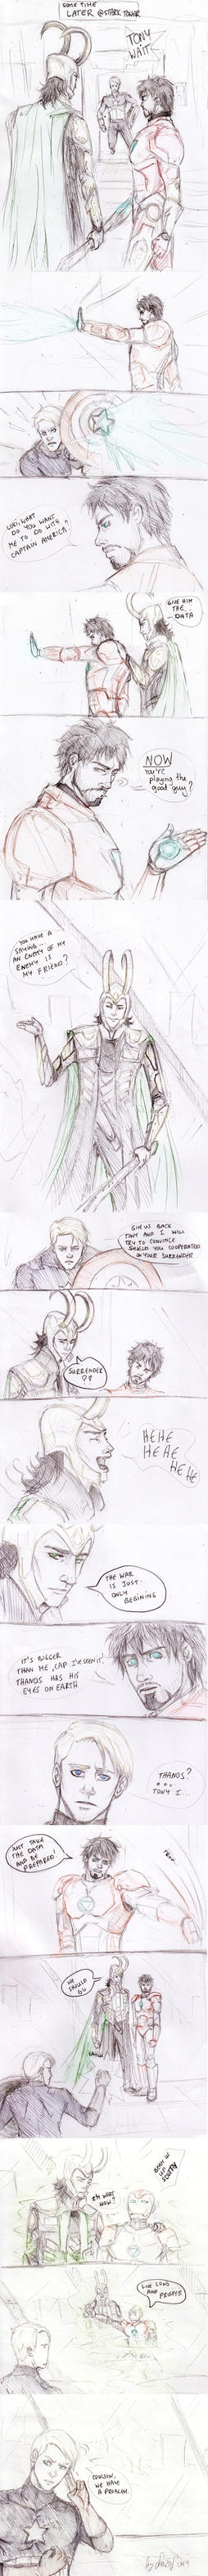 Tony Stark goes Renegade part 2 by Sanzo-Sinclaire